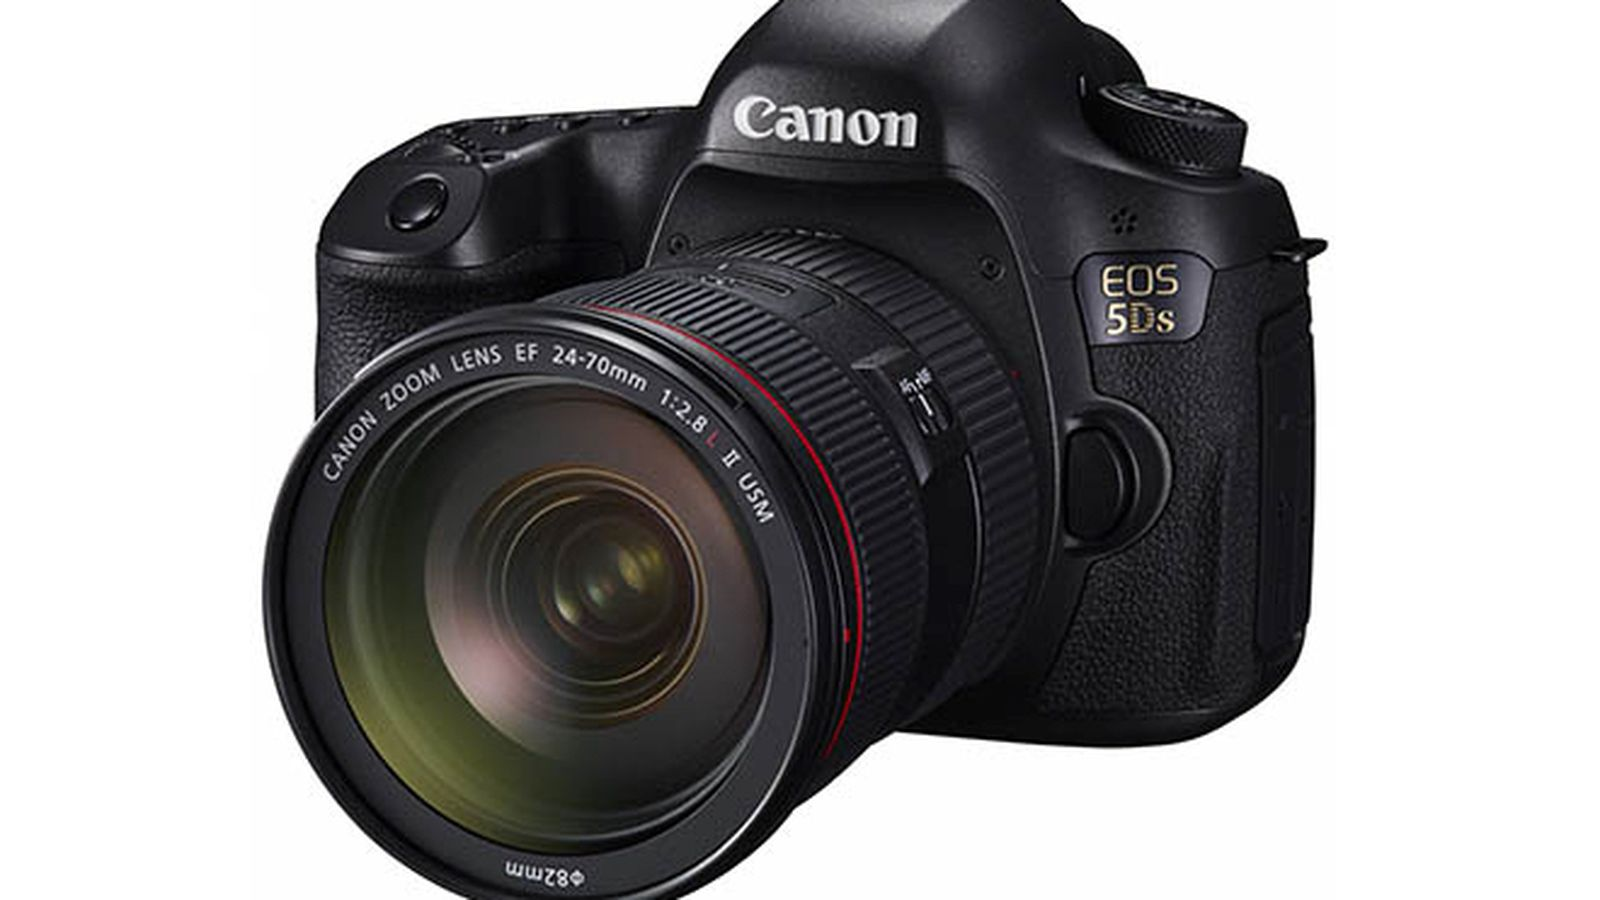 Camera High Megapixel Dslr Camera canons 50 megapixel eos 5ds is the highest resolution full frame dslr ever verge